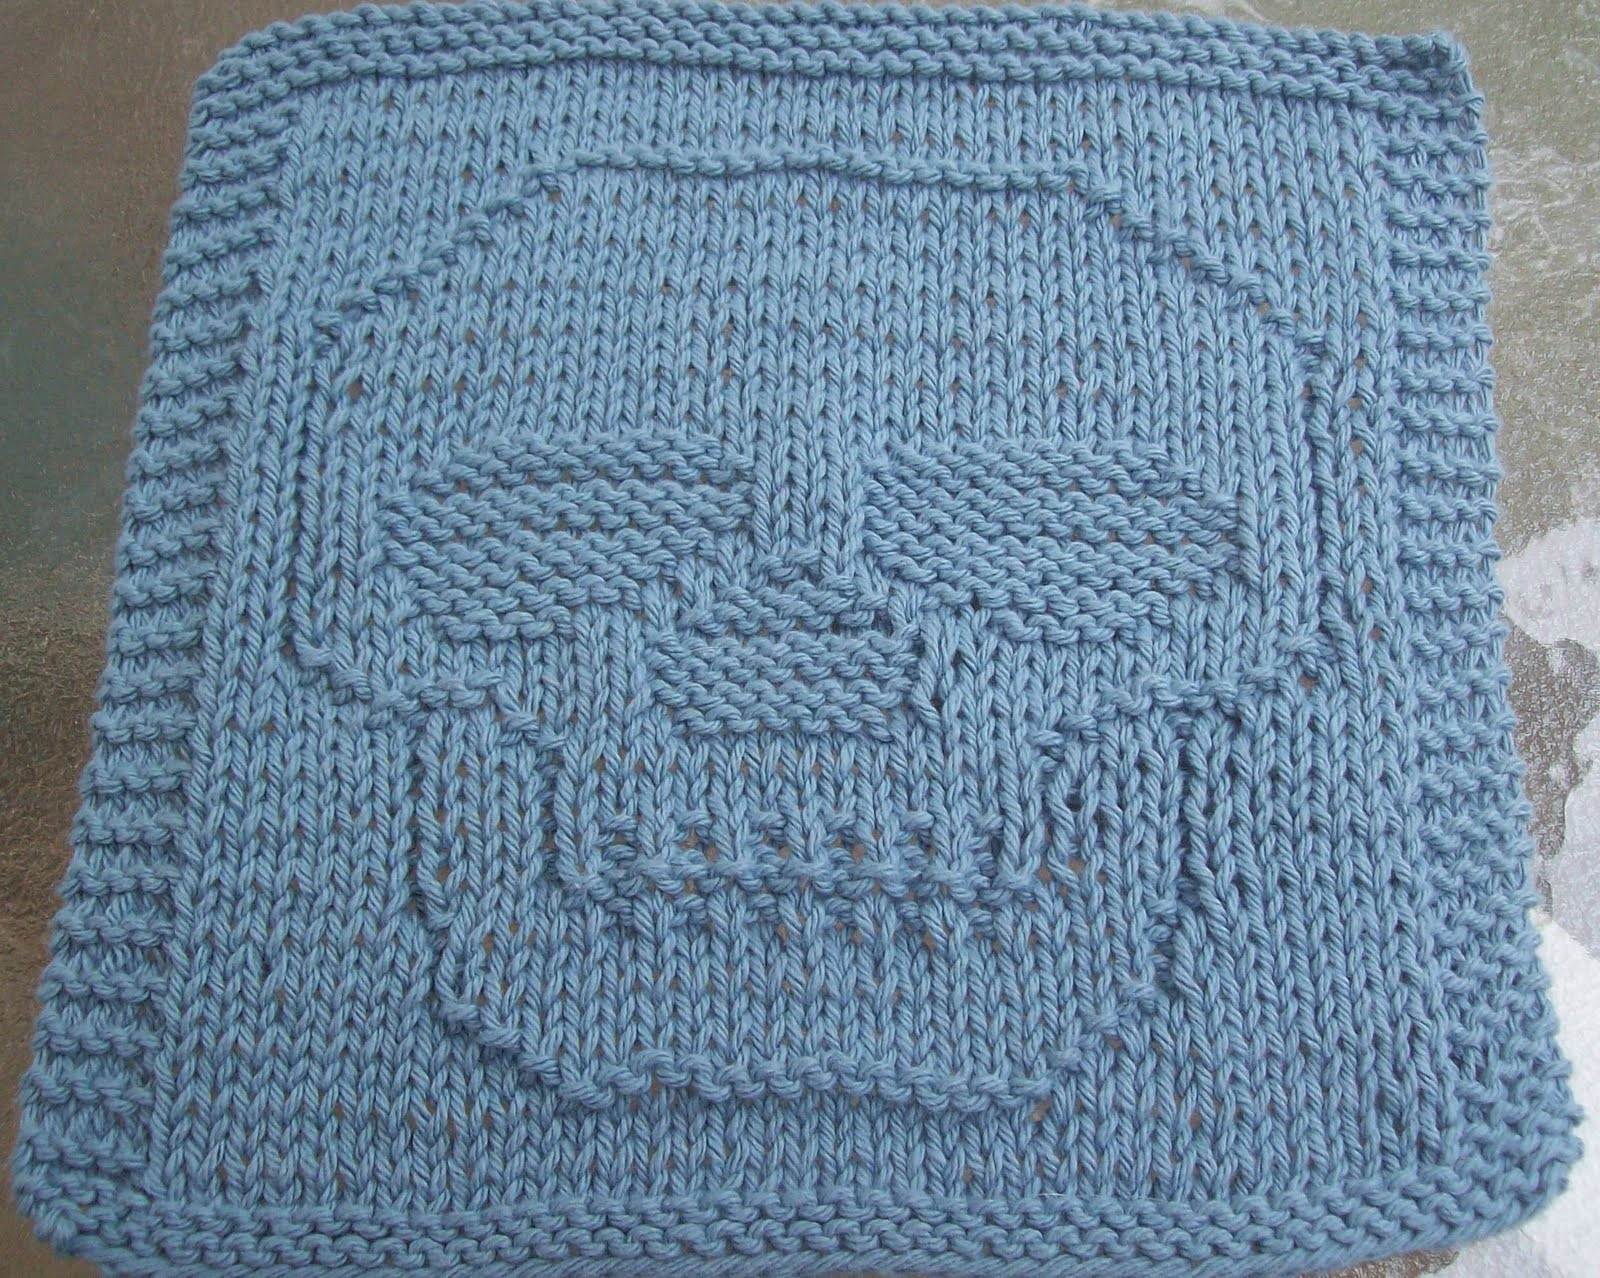 Knitted Dishcloth Patterns Best Of Digknitty Designs Just A Skull Knit Dishcloth Pattern Of Brilliant 47 Pics Knitted Dishcloth Patterns